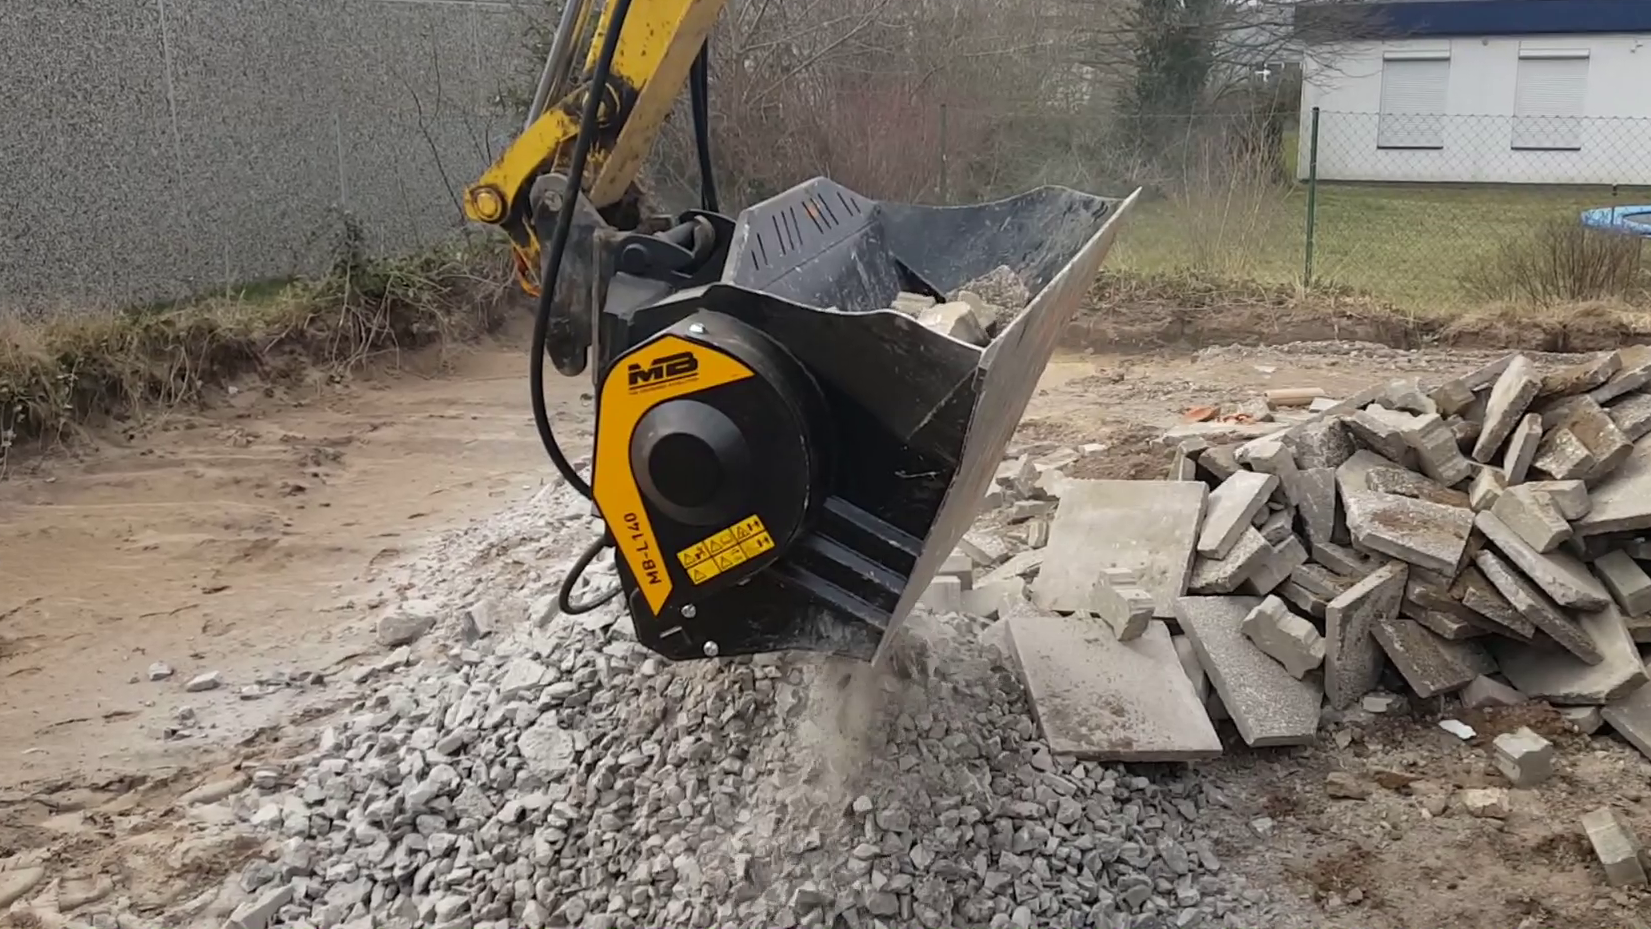 The MB-L140 crusher bucket crushing bricks on a mini-excavator to reuse as fill.